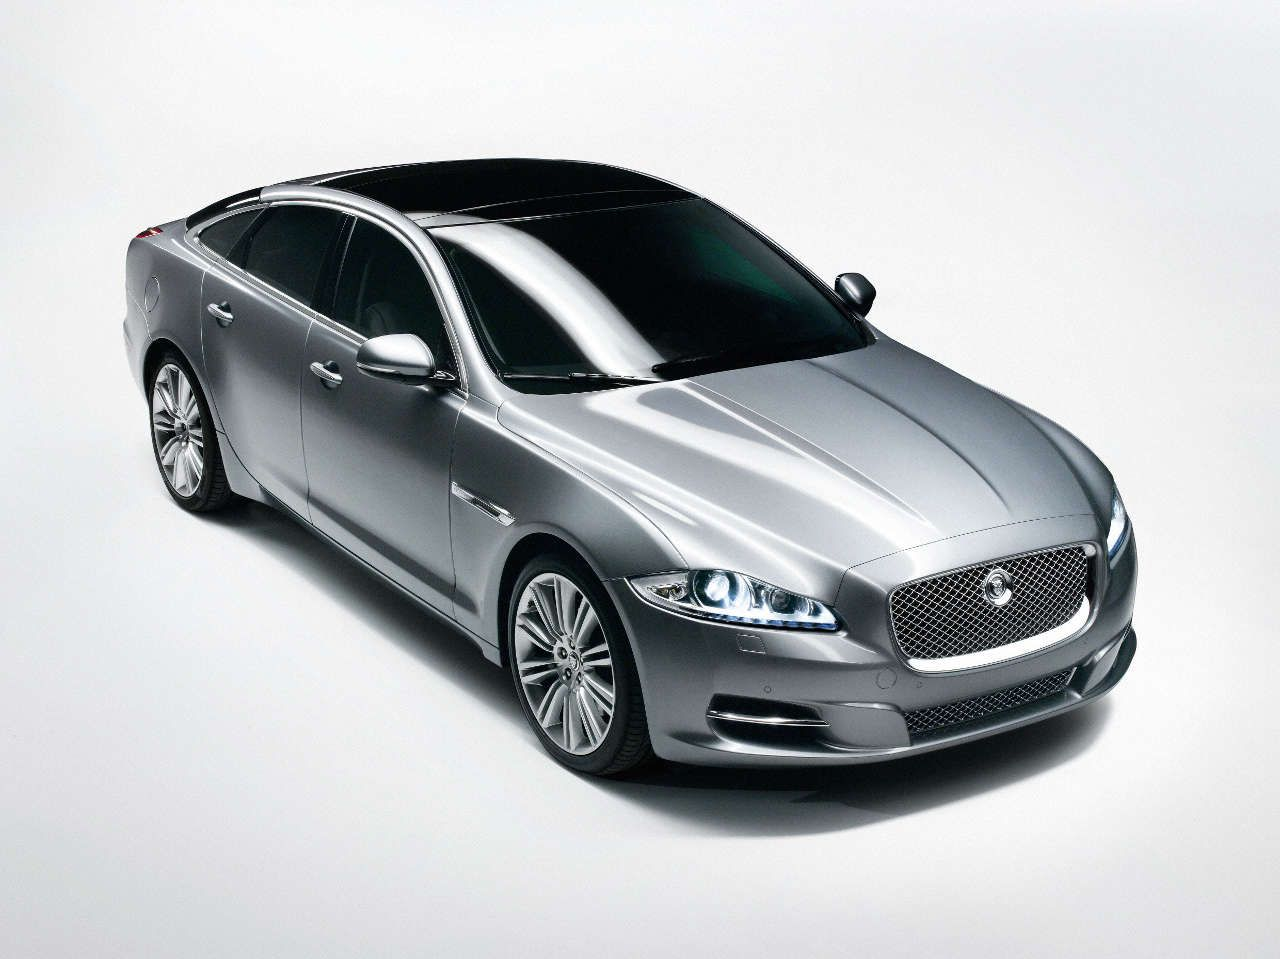 Jaguar Xj 2010 In Blue Royal Please My Dream Cars Pinterest